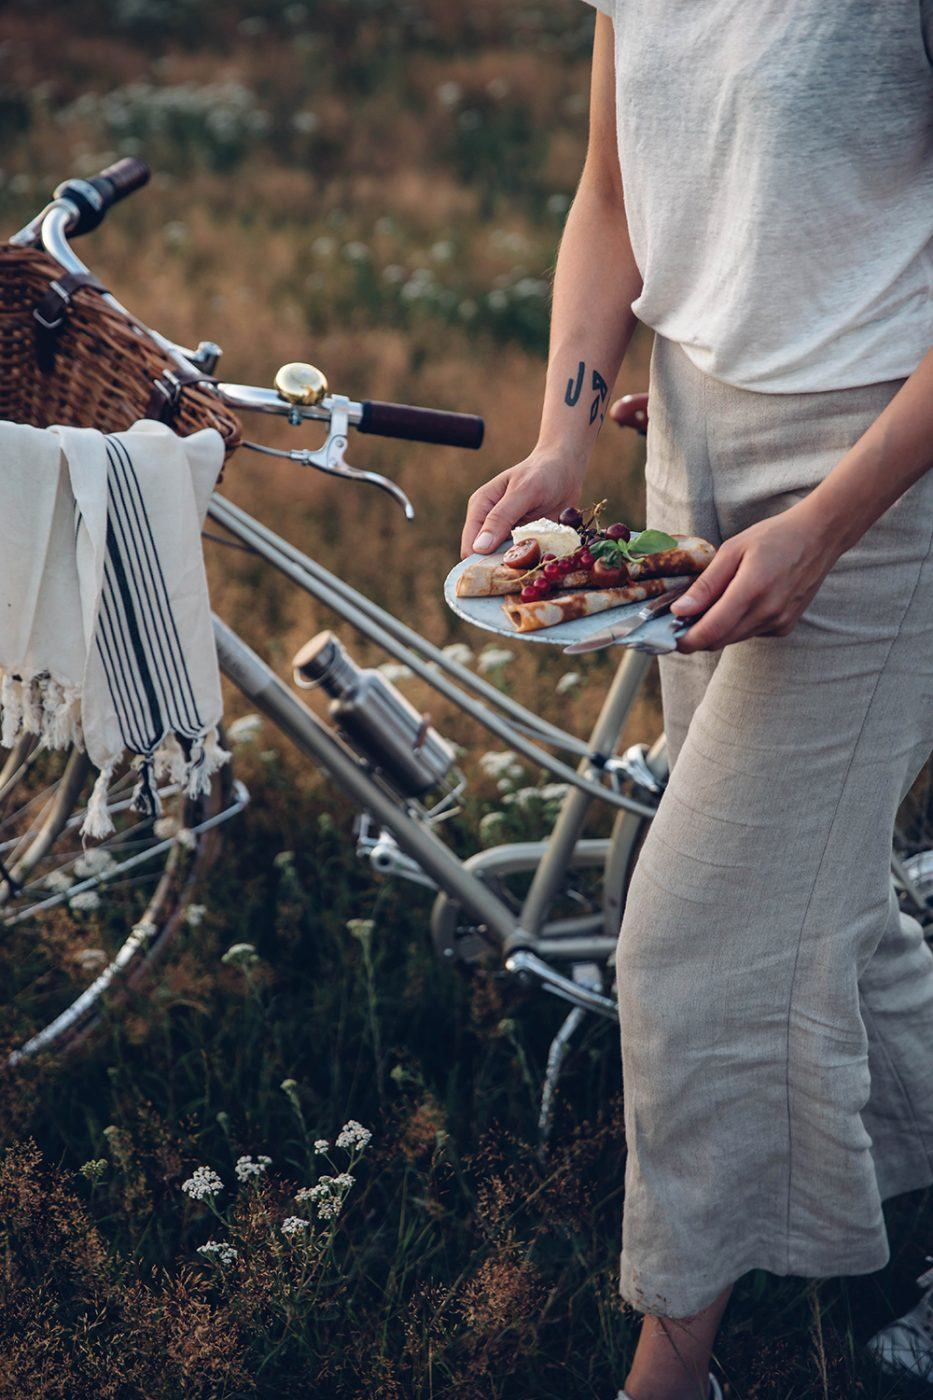 Image for Summer Picnic in the Countryside with Le Rustique